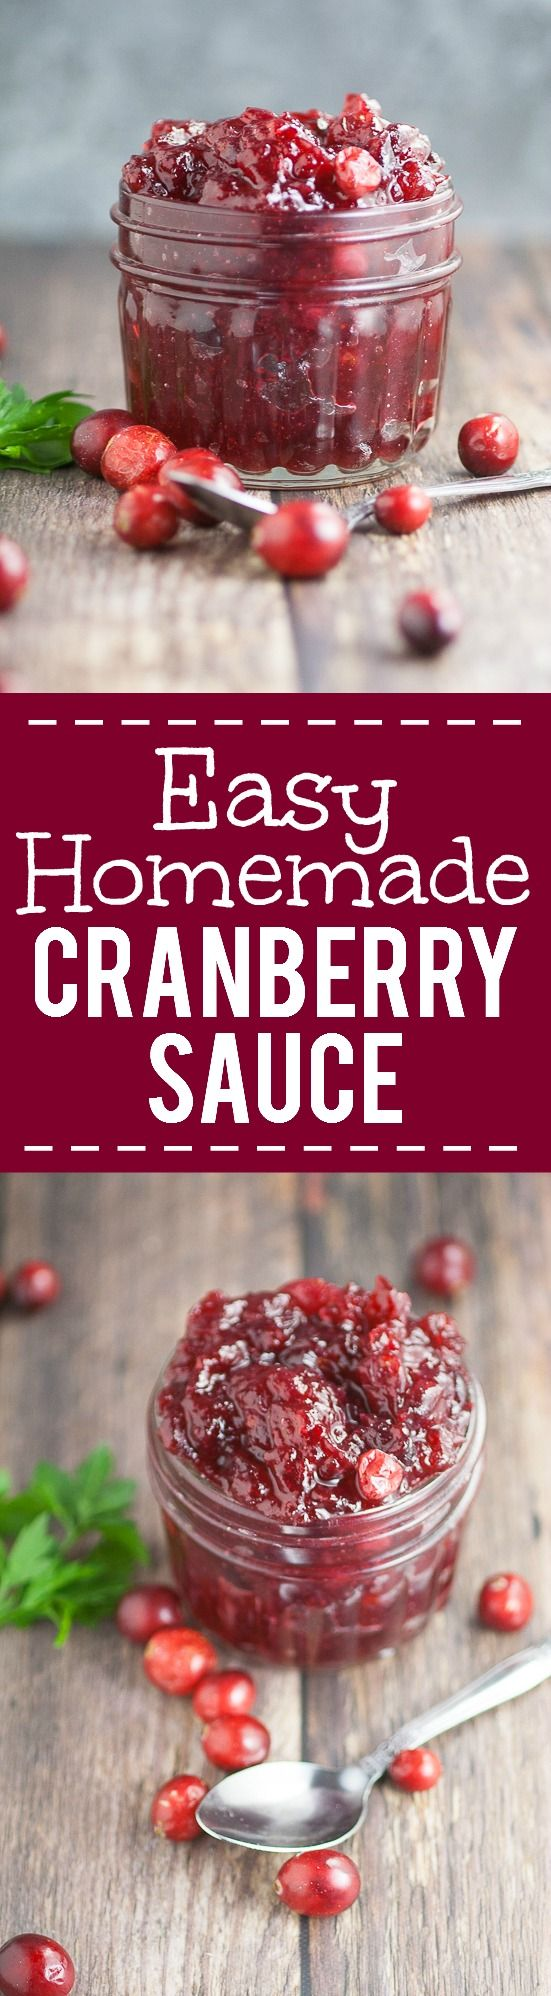 Easy Homemade Cranberry Sauce recipe with apple juice and a hint of maple -A simple, sweet and tangy version of a classic, this 4 ingredientEasy Homemade Cranberry Sauce recipe promises to be a pretty and delicious addition to your Thanksgiving feast!